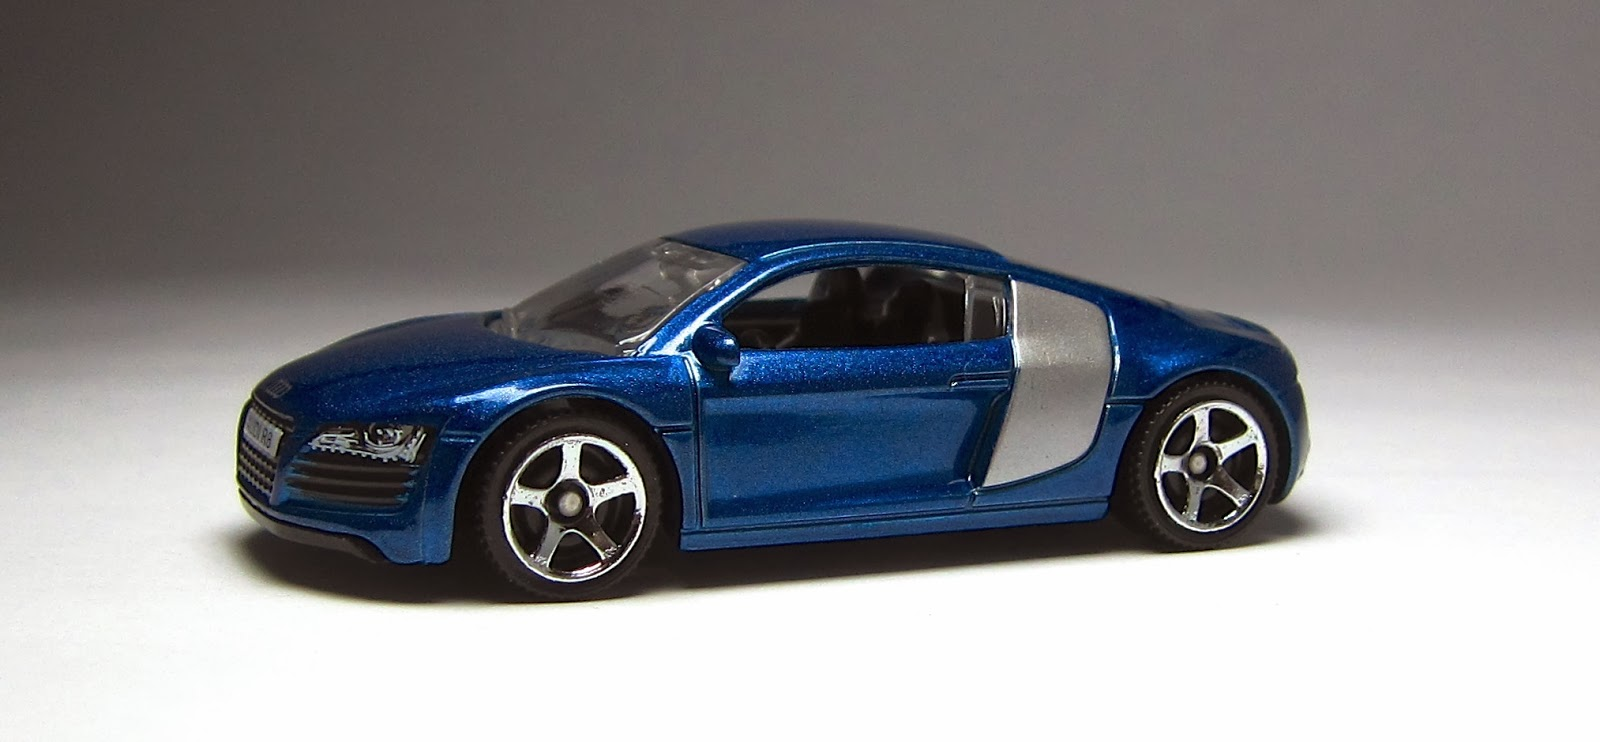 First Look: 2013 Matchbox Audi R8… – theLamleyGroup